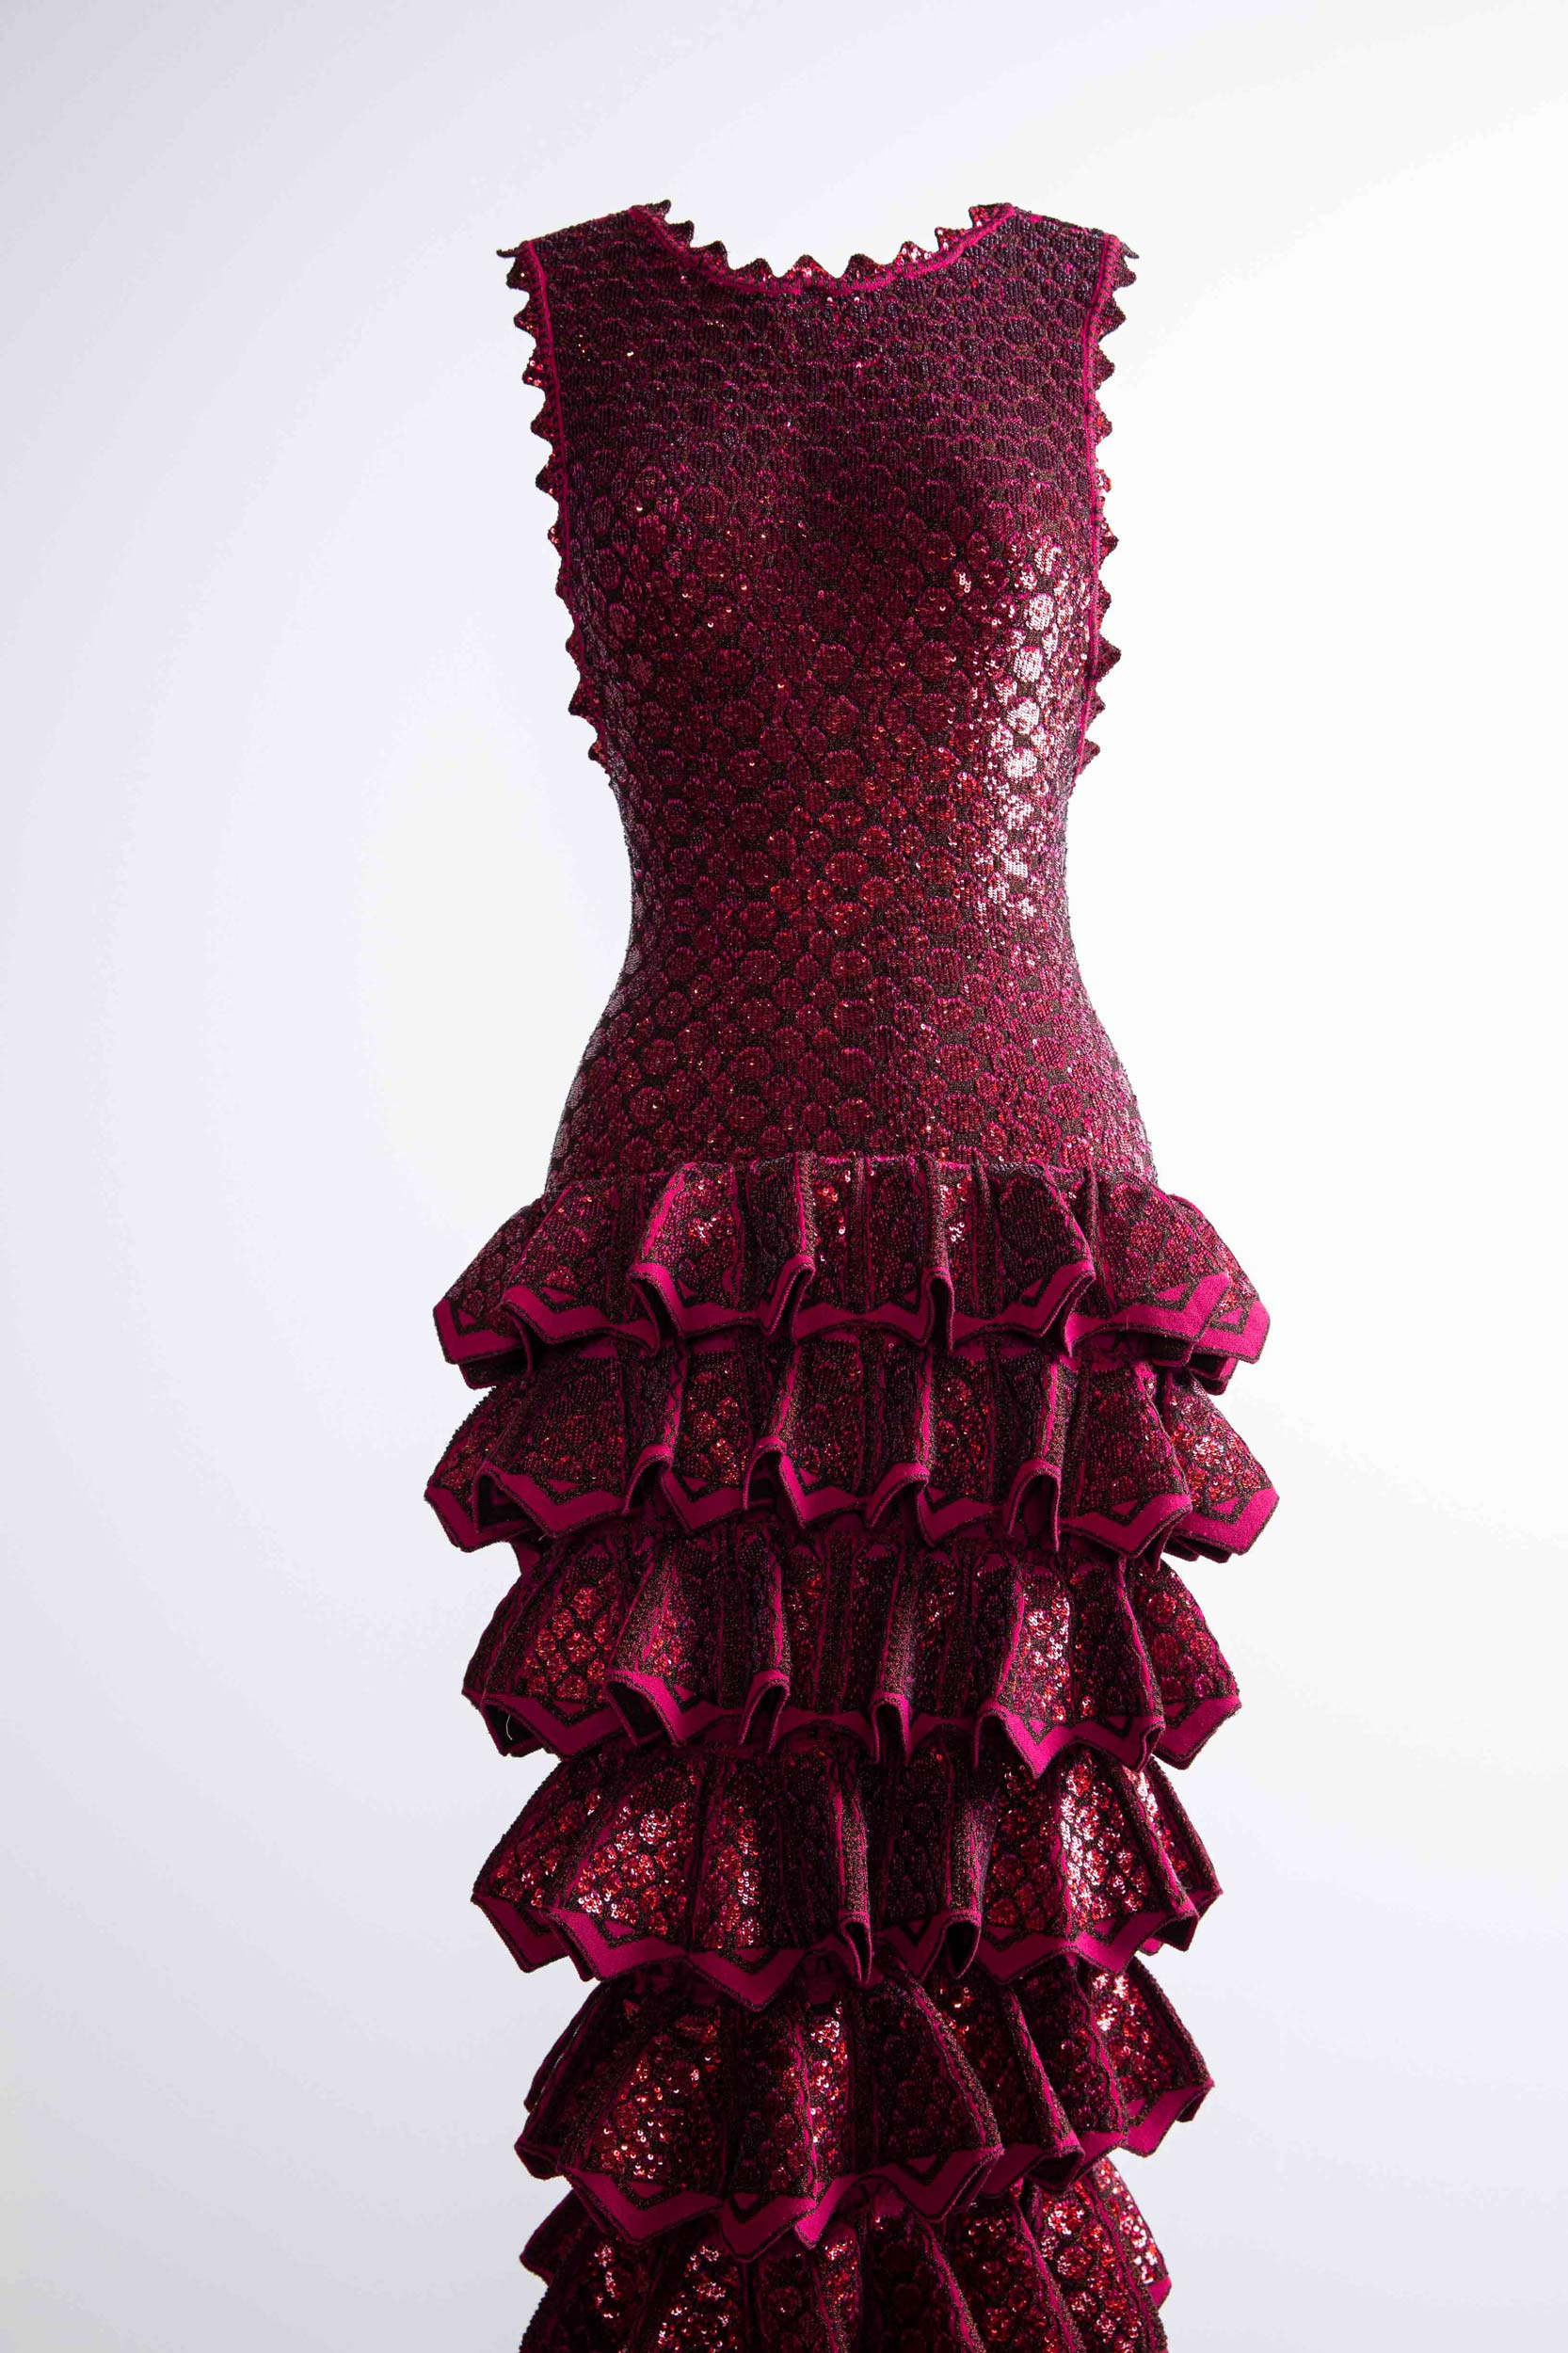 Inside Azzedine Alaïa's magnificent archive of art and fashion